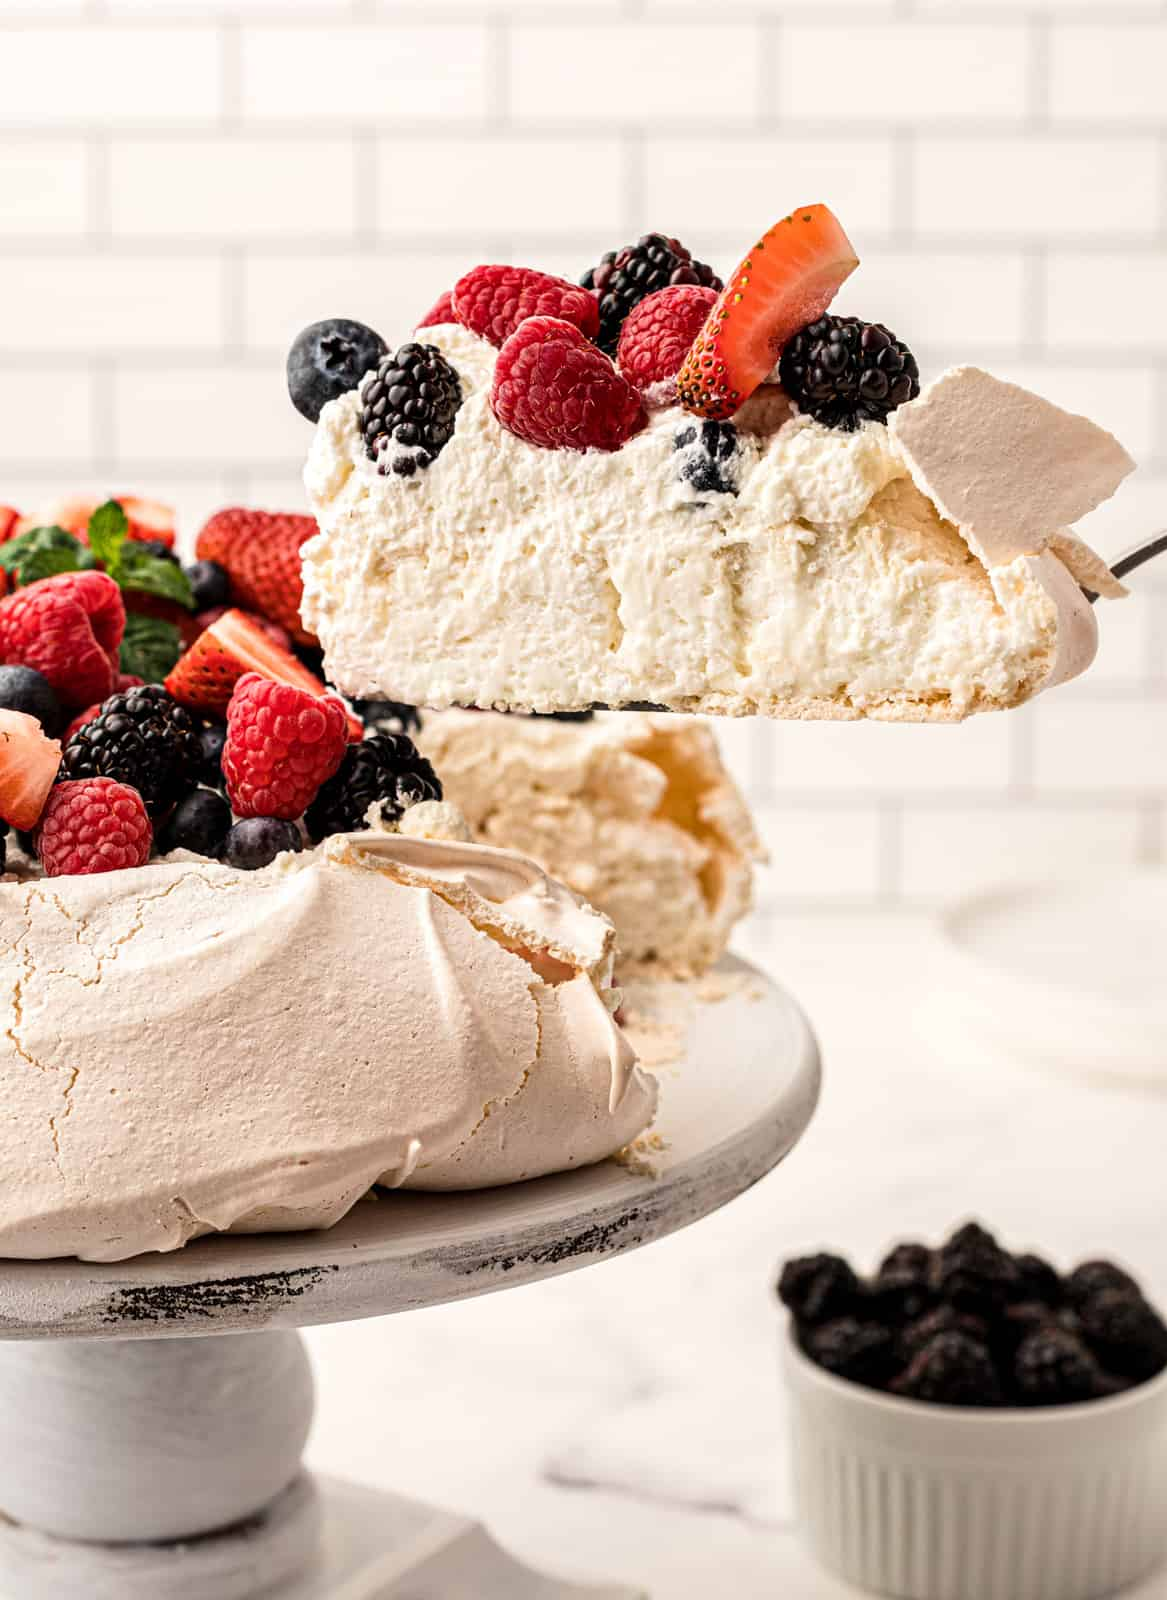 Pie server holding a slice out of the Pavlova recipe on cake stand